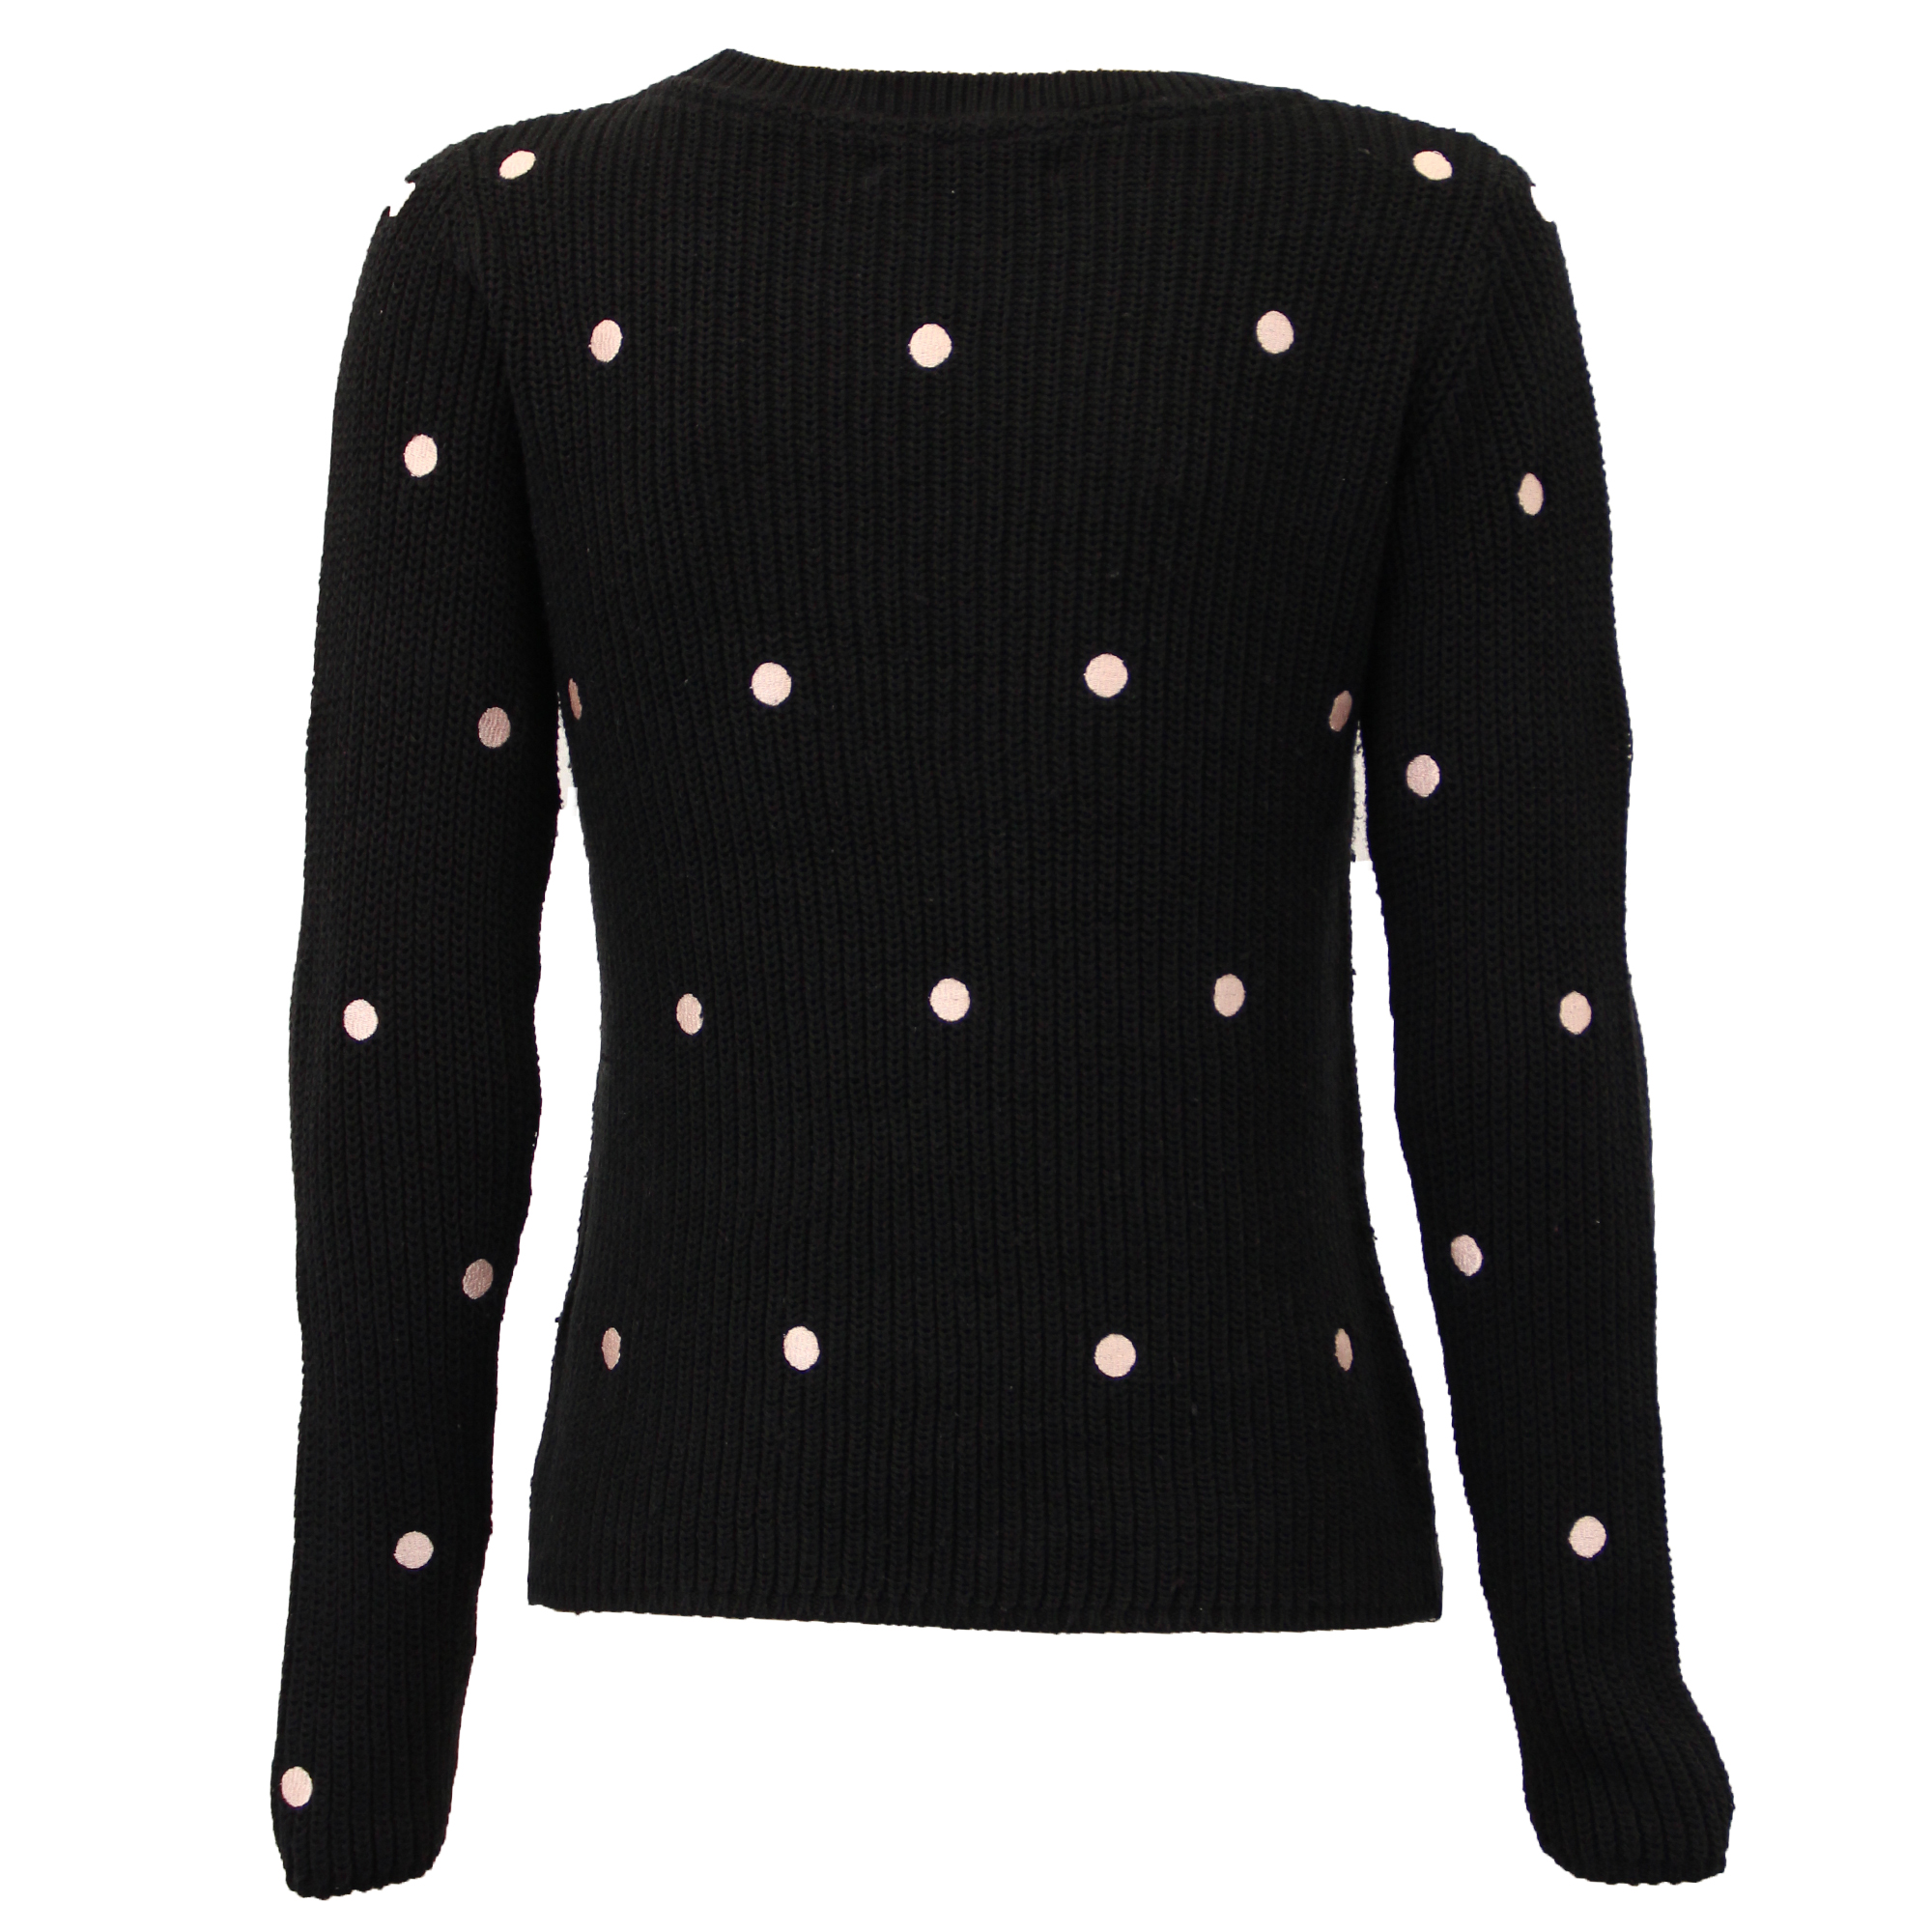 Ladies Jumpers Womens Knitted Top Pullover Sweater Polka Dot Amara ...